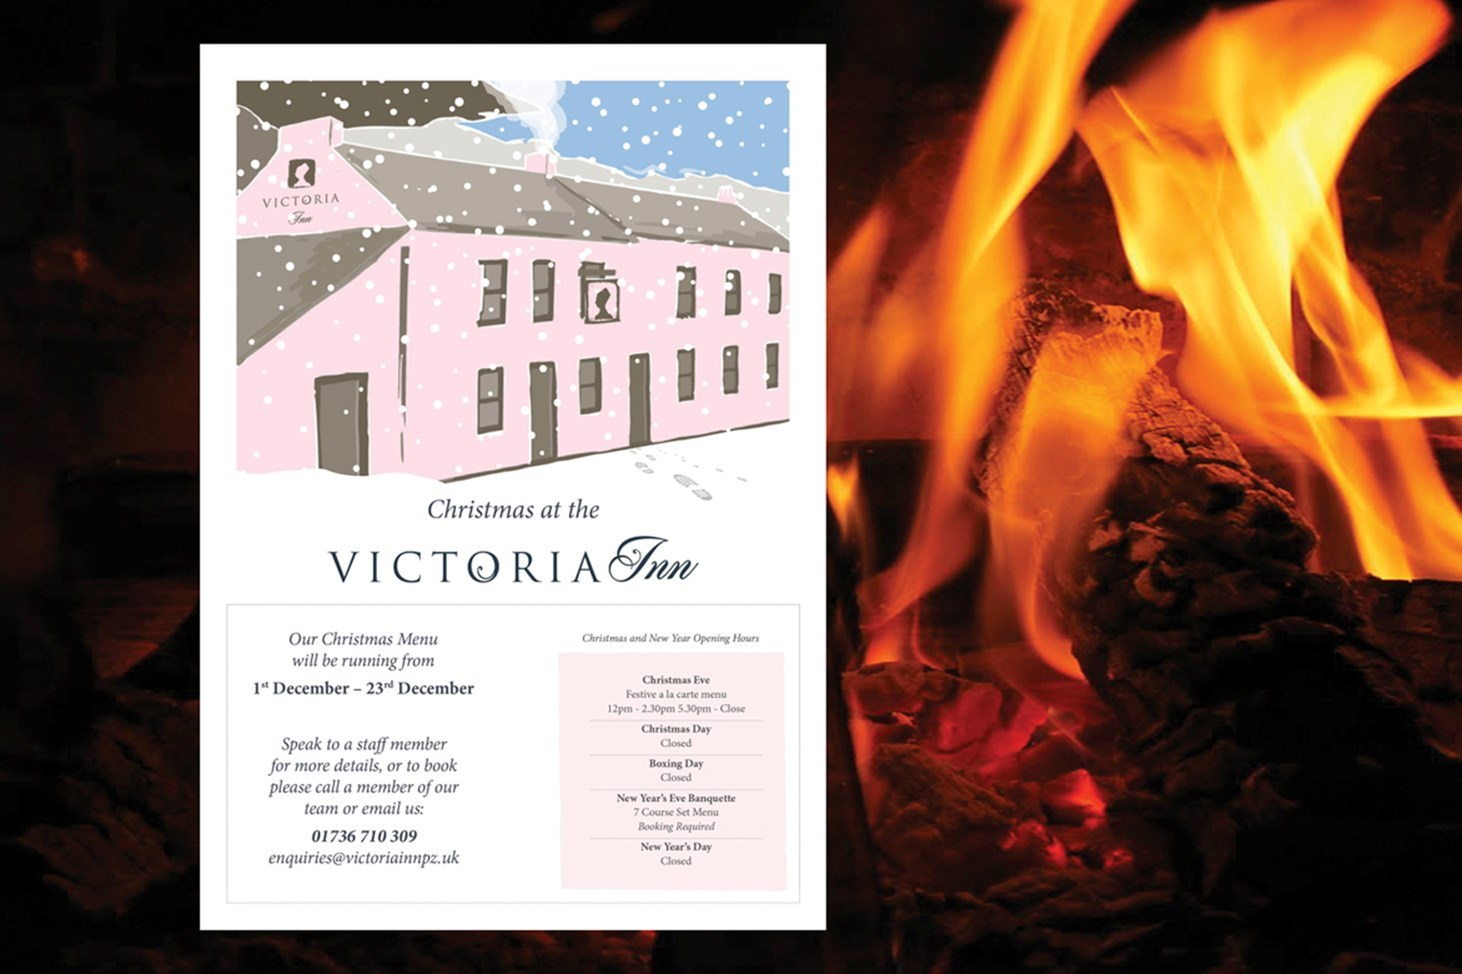 Victoria Inn, Gastro pub in Perranuthnoe, Cornwall, showing new branding by Design79 for Christmas party menus